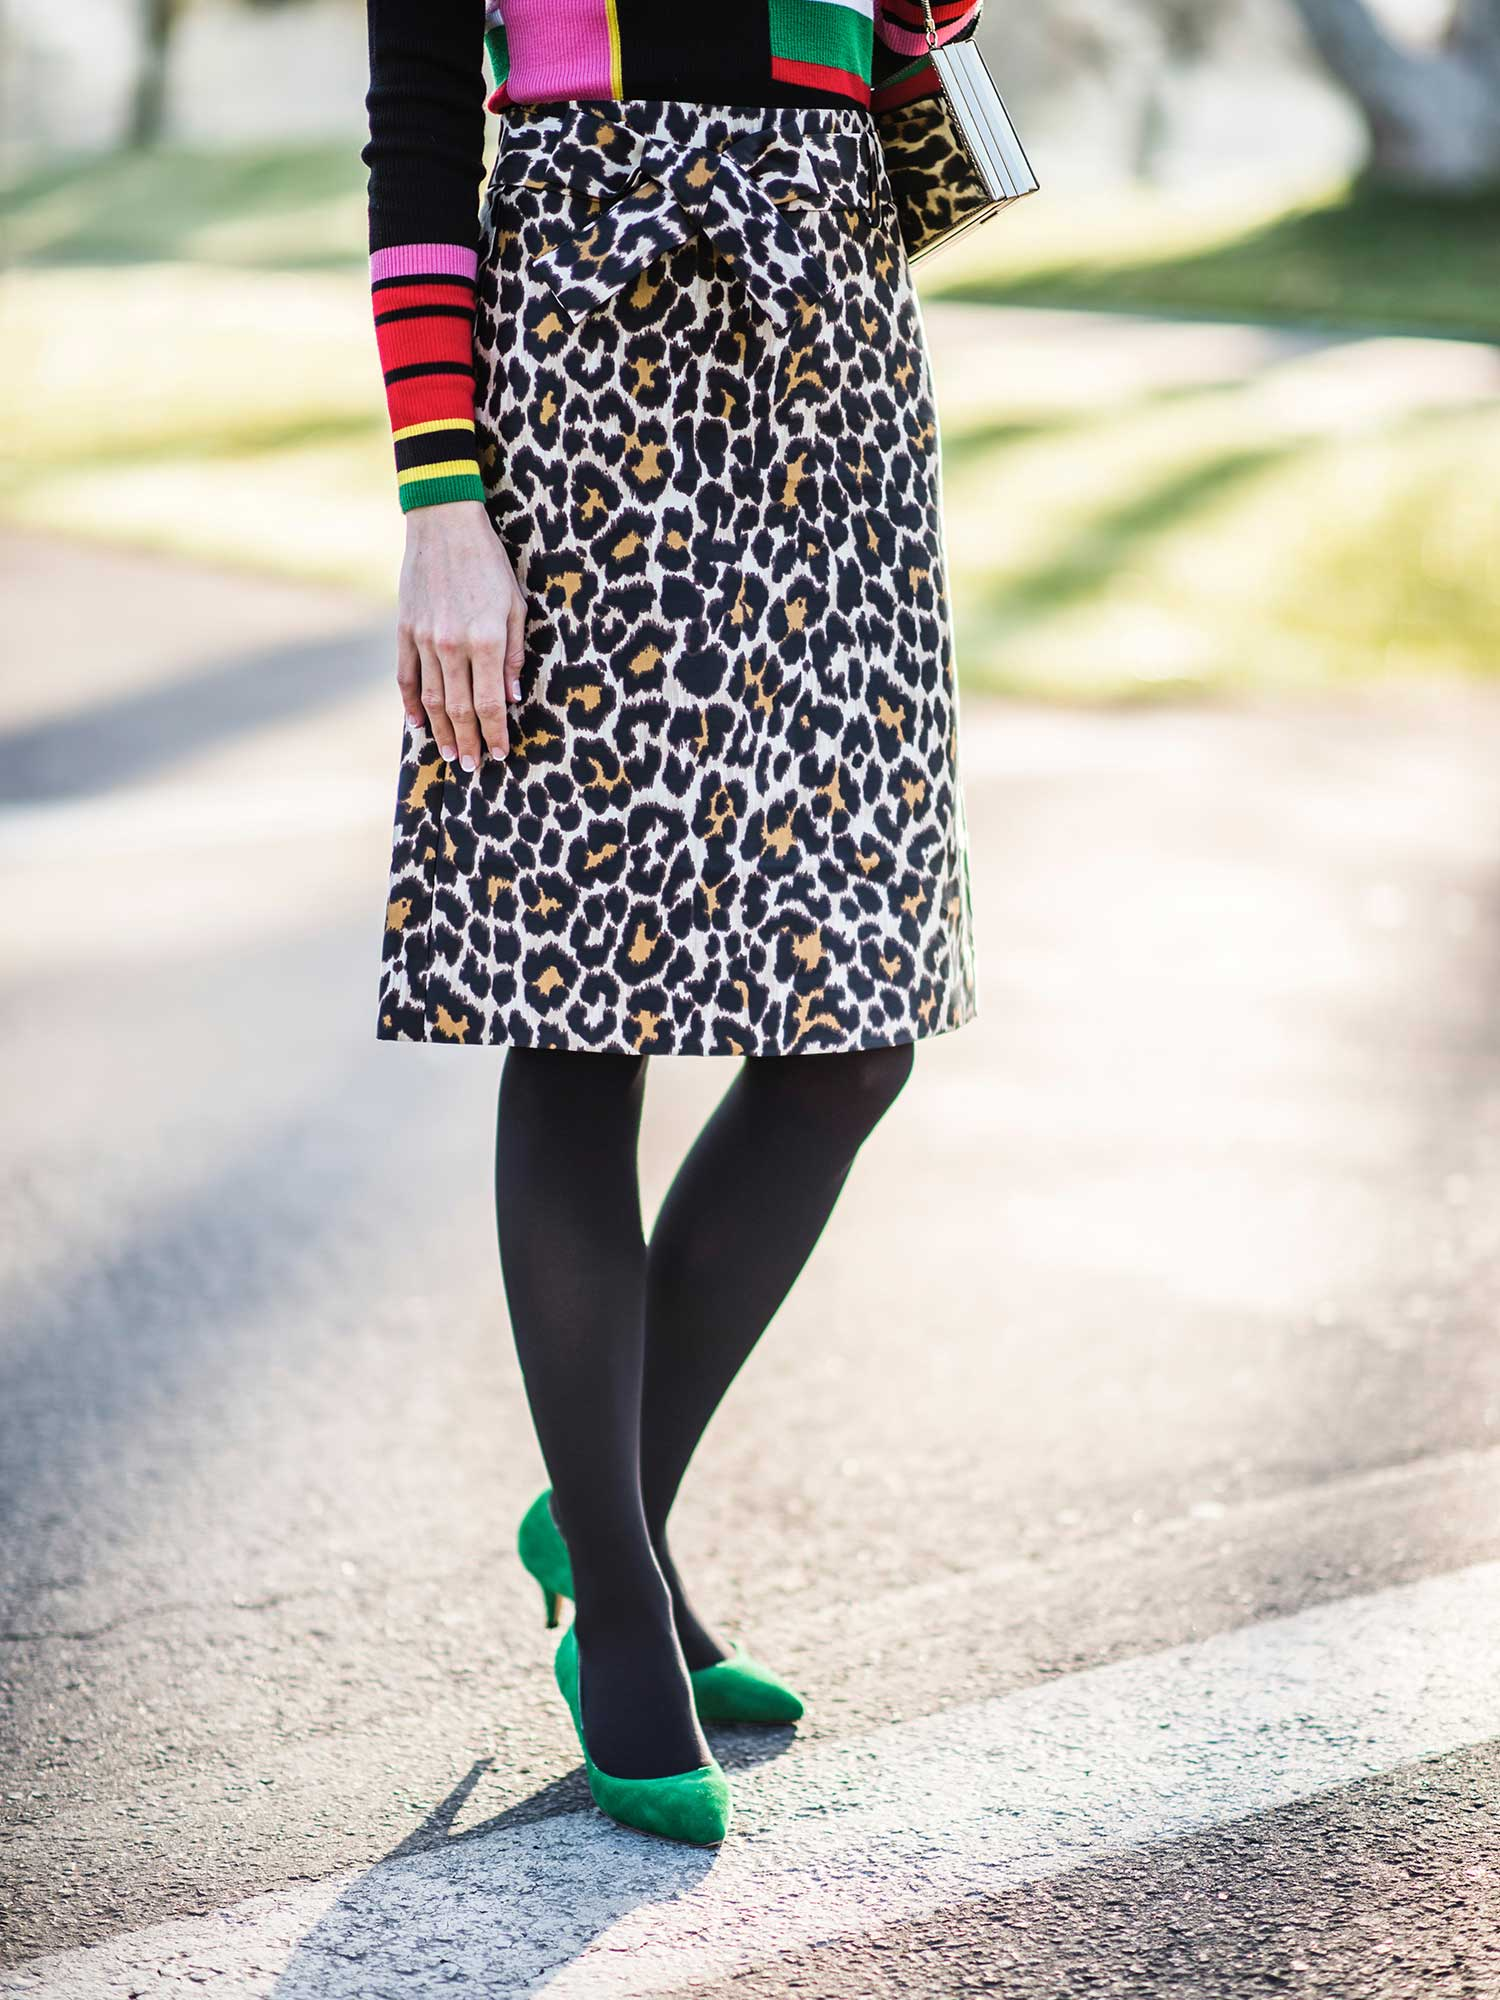 Jenna-Pilant-Style-Blogger-San-Diego-Lucky-Little-Mustardseed-How-To-Mix-Prints-In-Winter-3